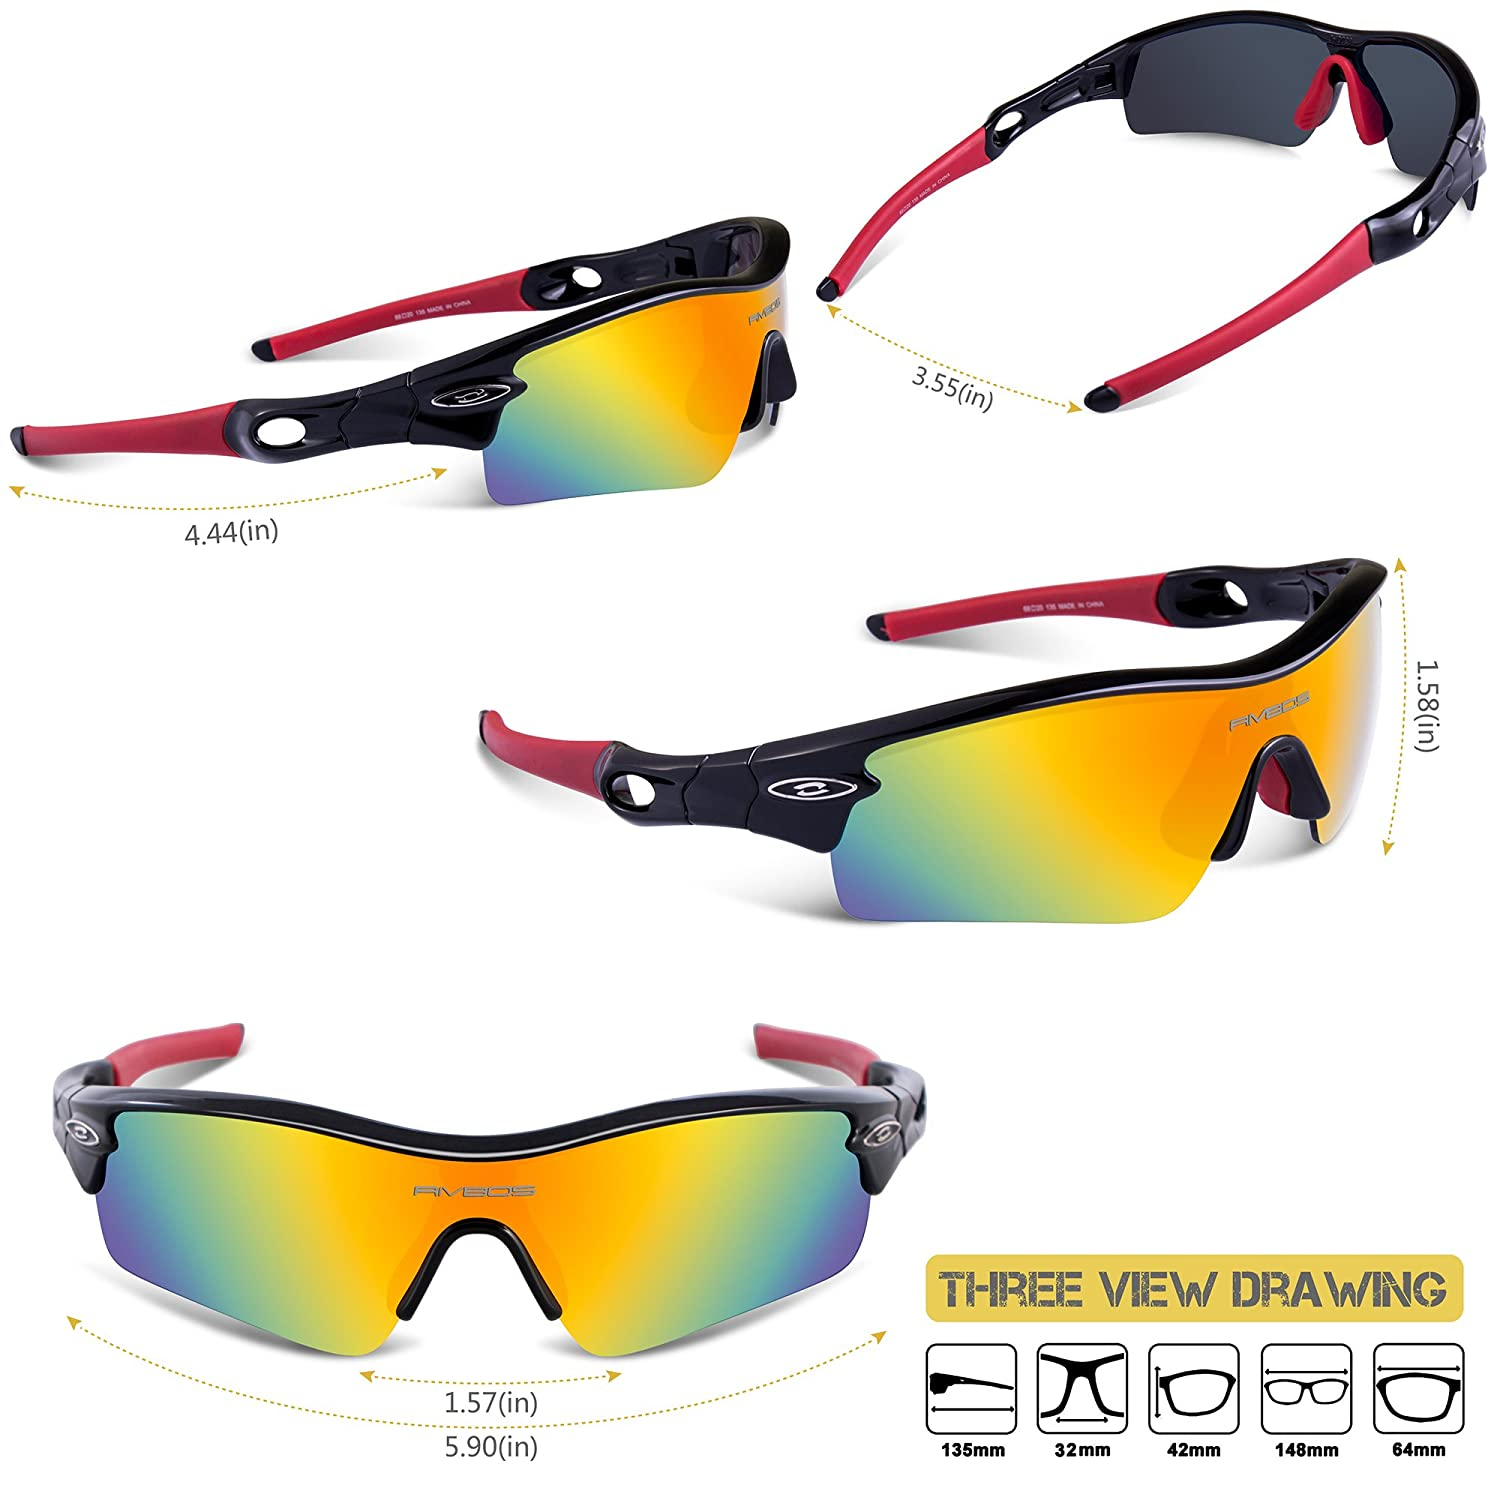 ee52e94acc46c Amazon.com   RIVBOS 805 TR 90 Frame Polarized Sports Sunglasses Sun Glasses  with 5 Set Interchangeable Lenses for Men Women Cycling Baseball   Sports    ...